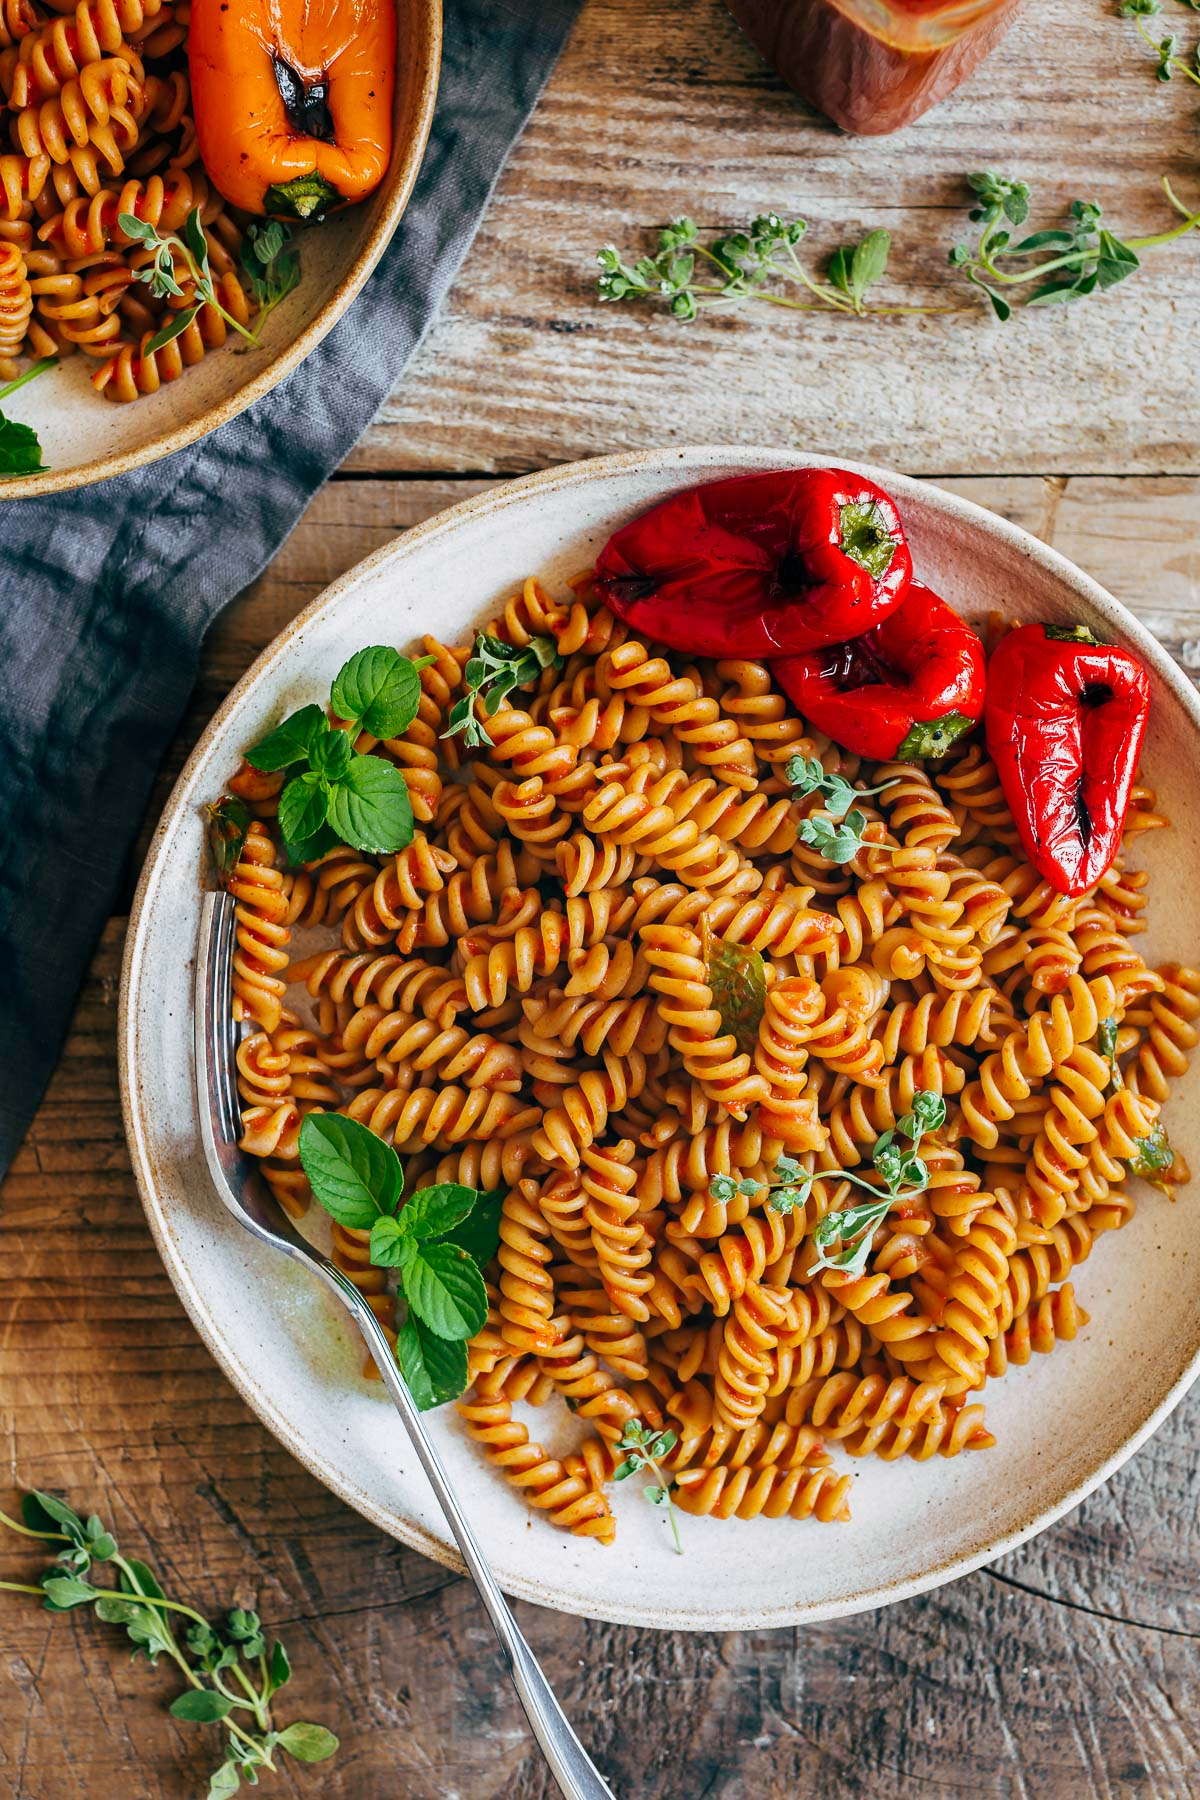 creamy vegan ROASTED RED PEPPER PASTA SAUCE recipe ricetta cremosa pasta con SALSA ai PEPERONI arrostiti